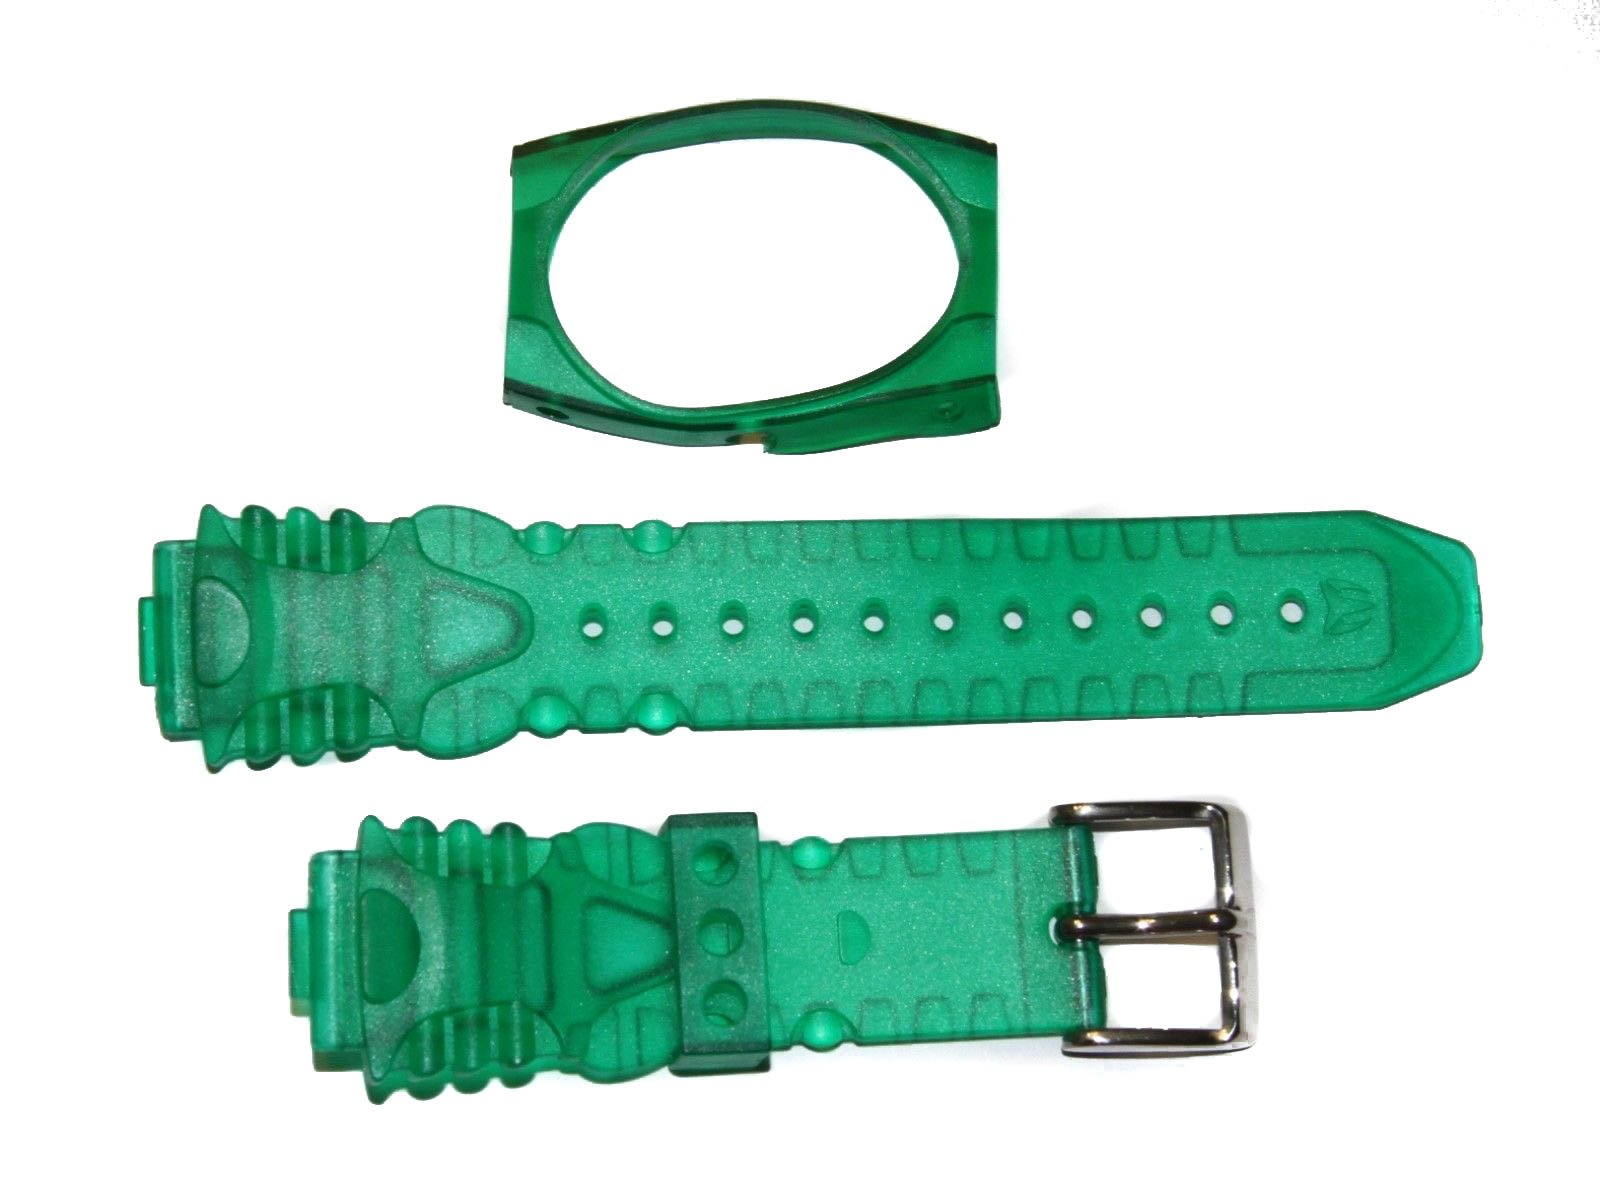 TechnoMarine 1034 17MM Gel Plastic Watch Strap Band with Cover in Transparent Green & Logo Stainless Buckle